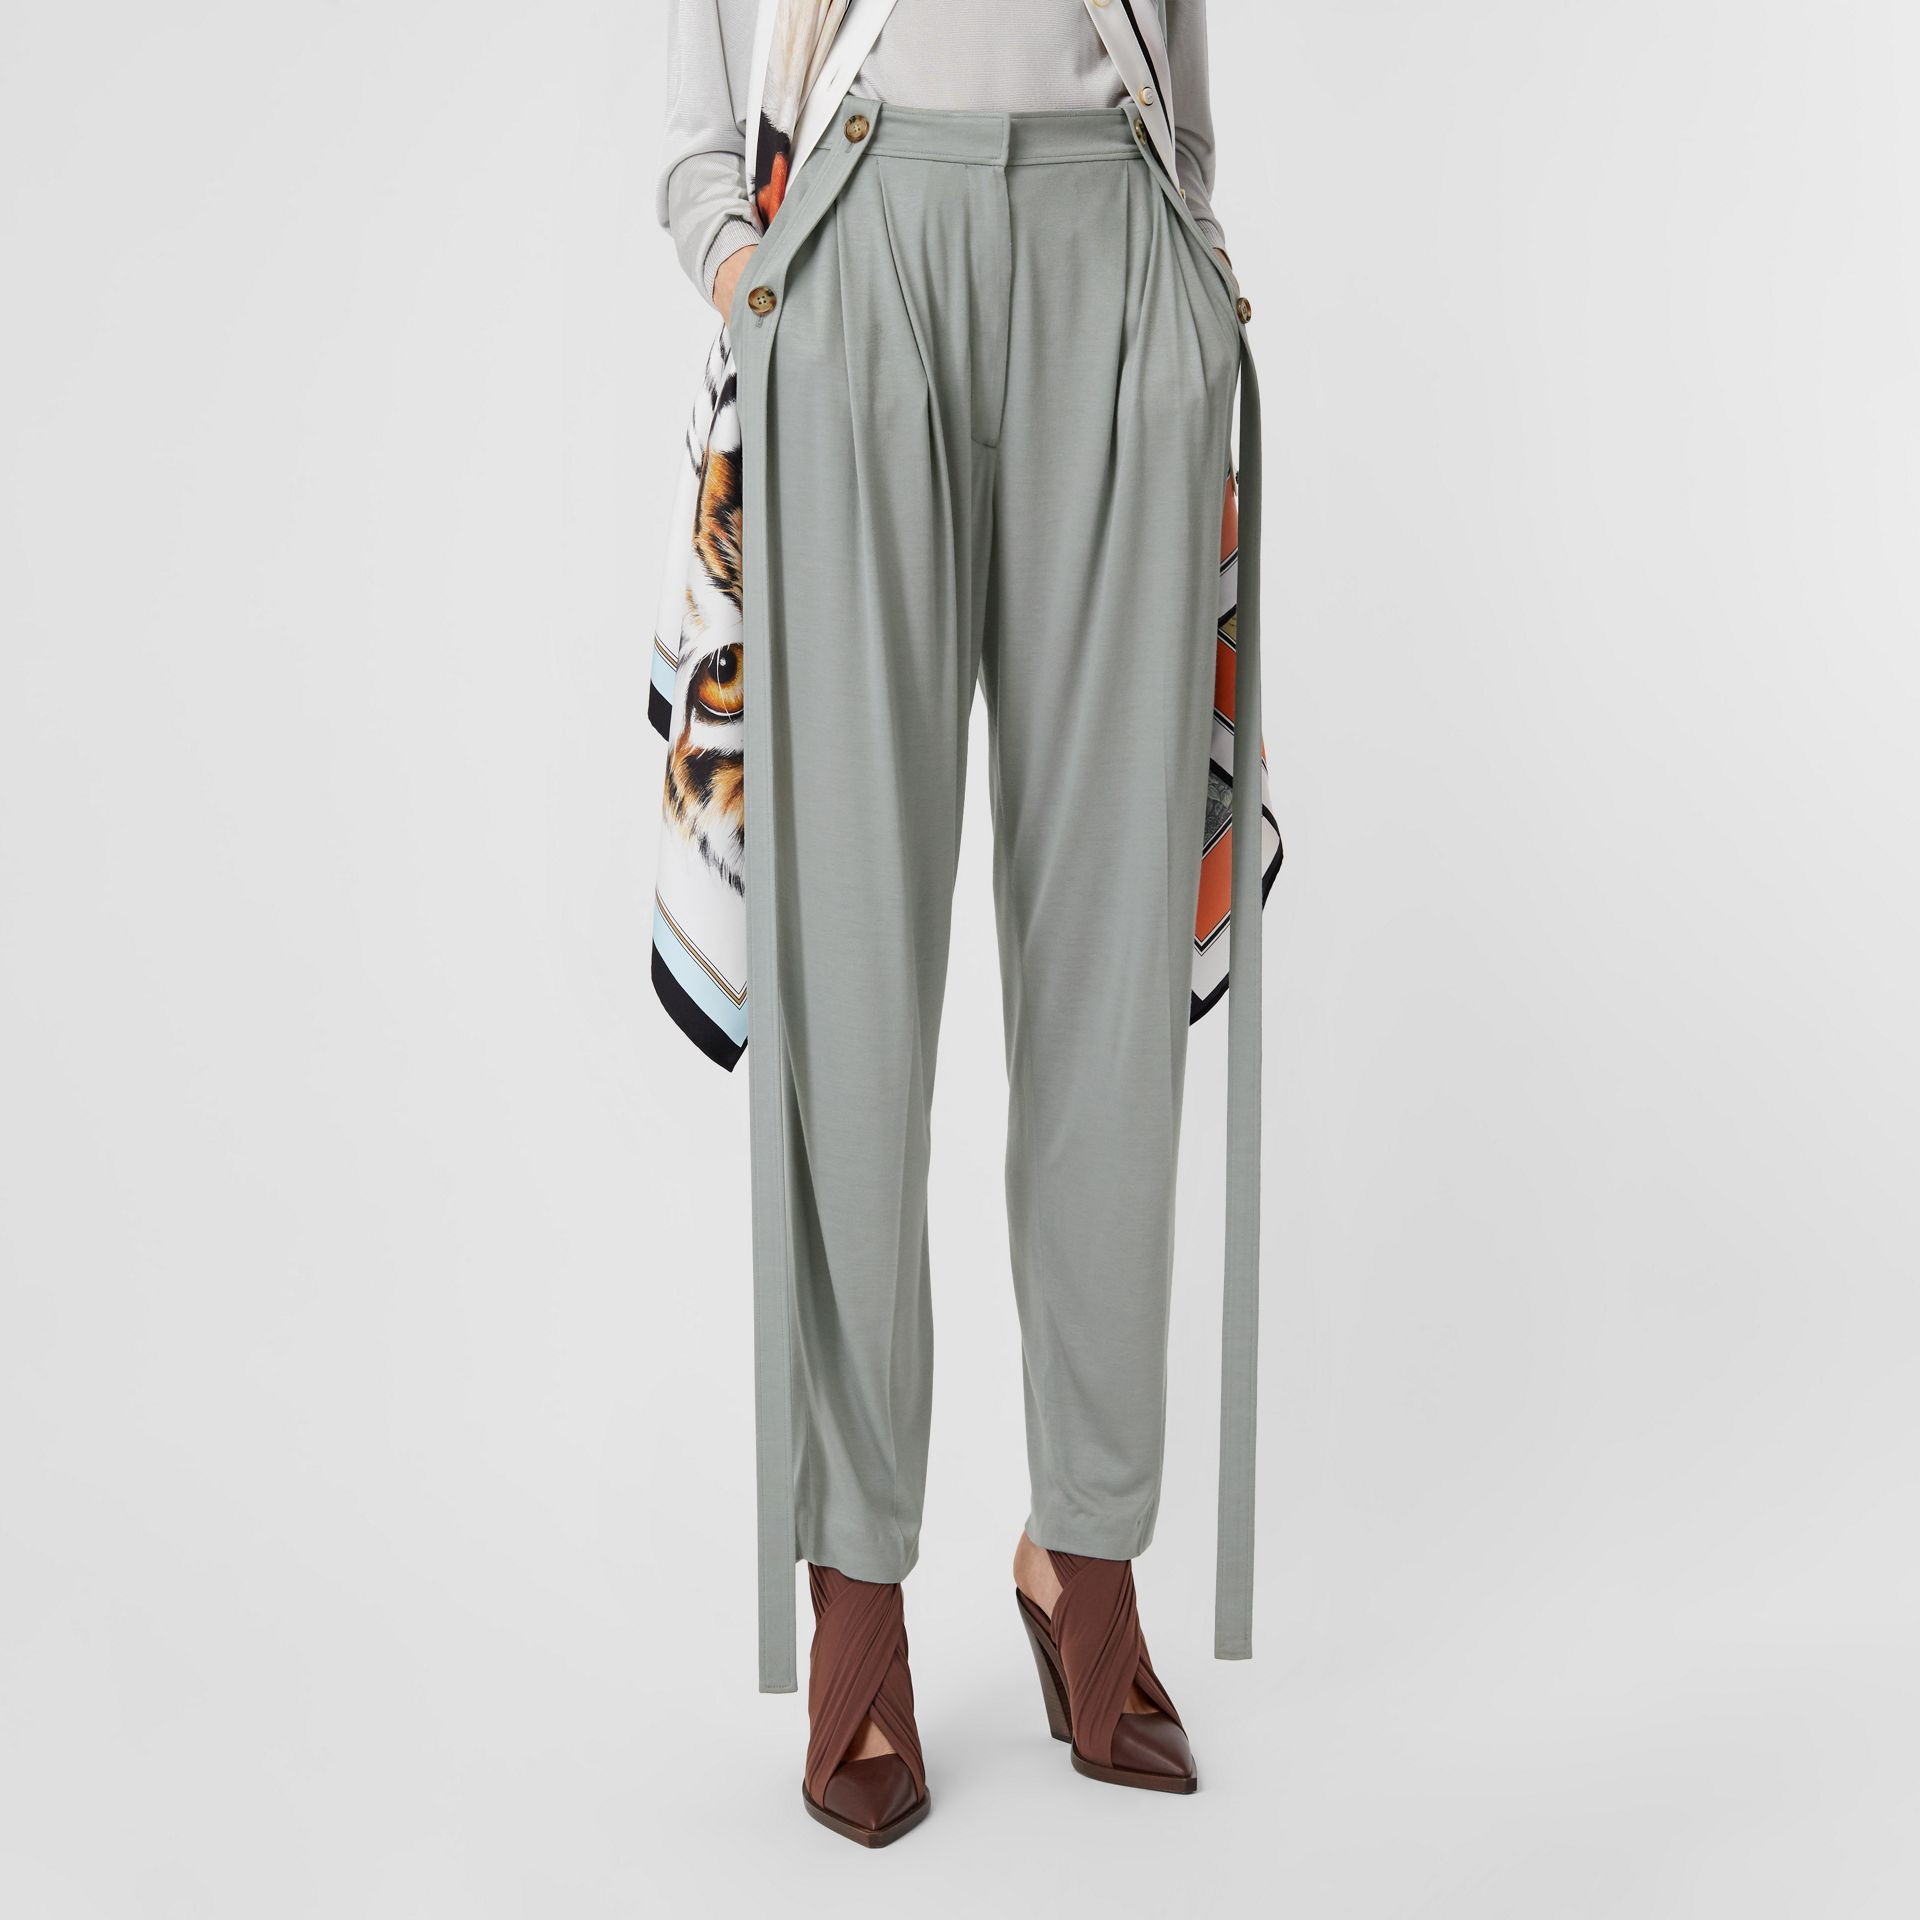 Strap Detail Jersey Tailored Trousers in Heather Melange - Women | Burberry - gallery image 4